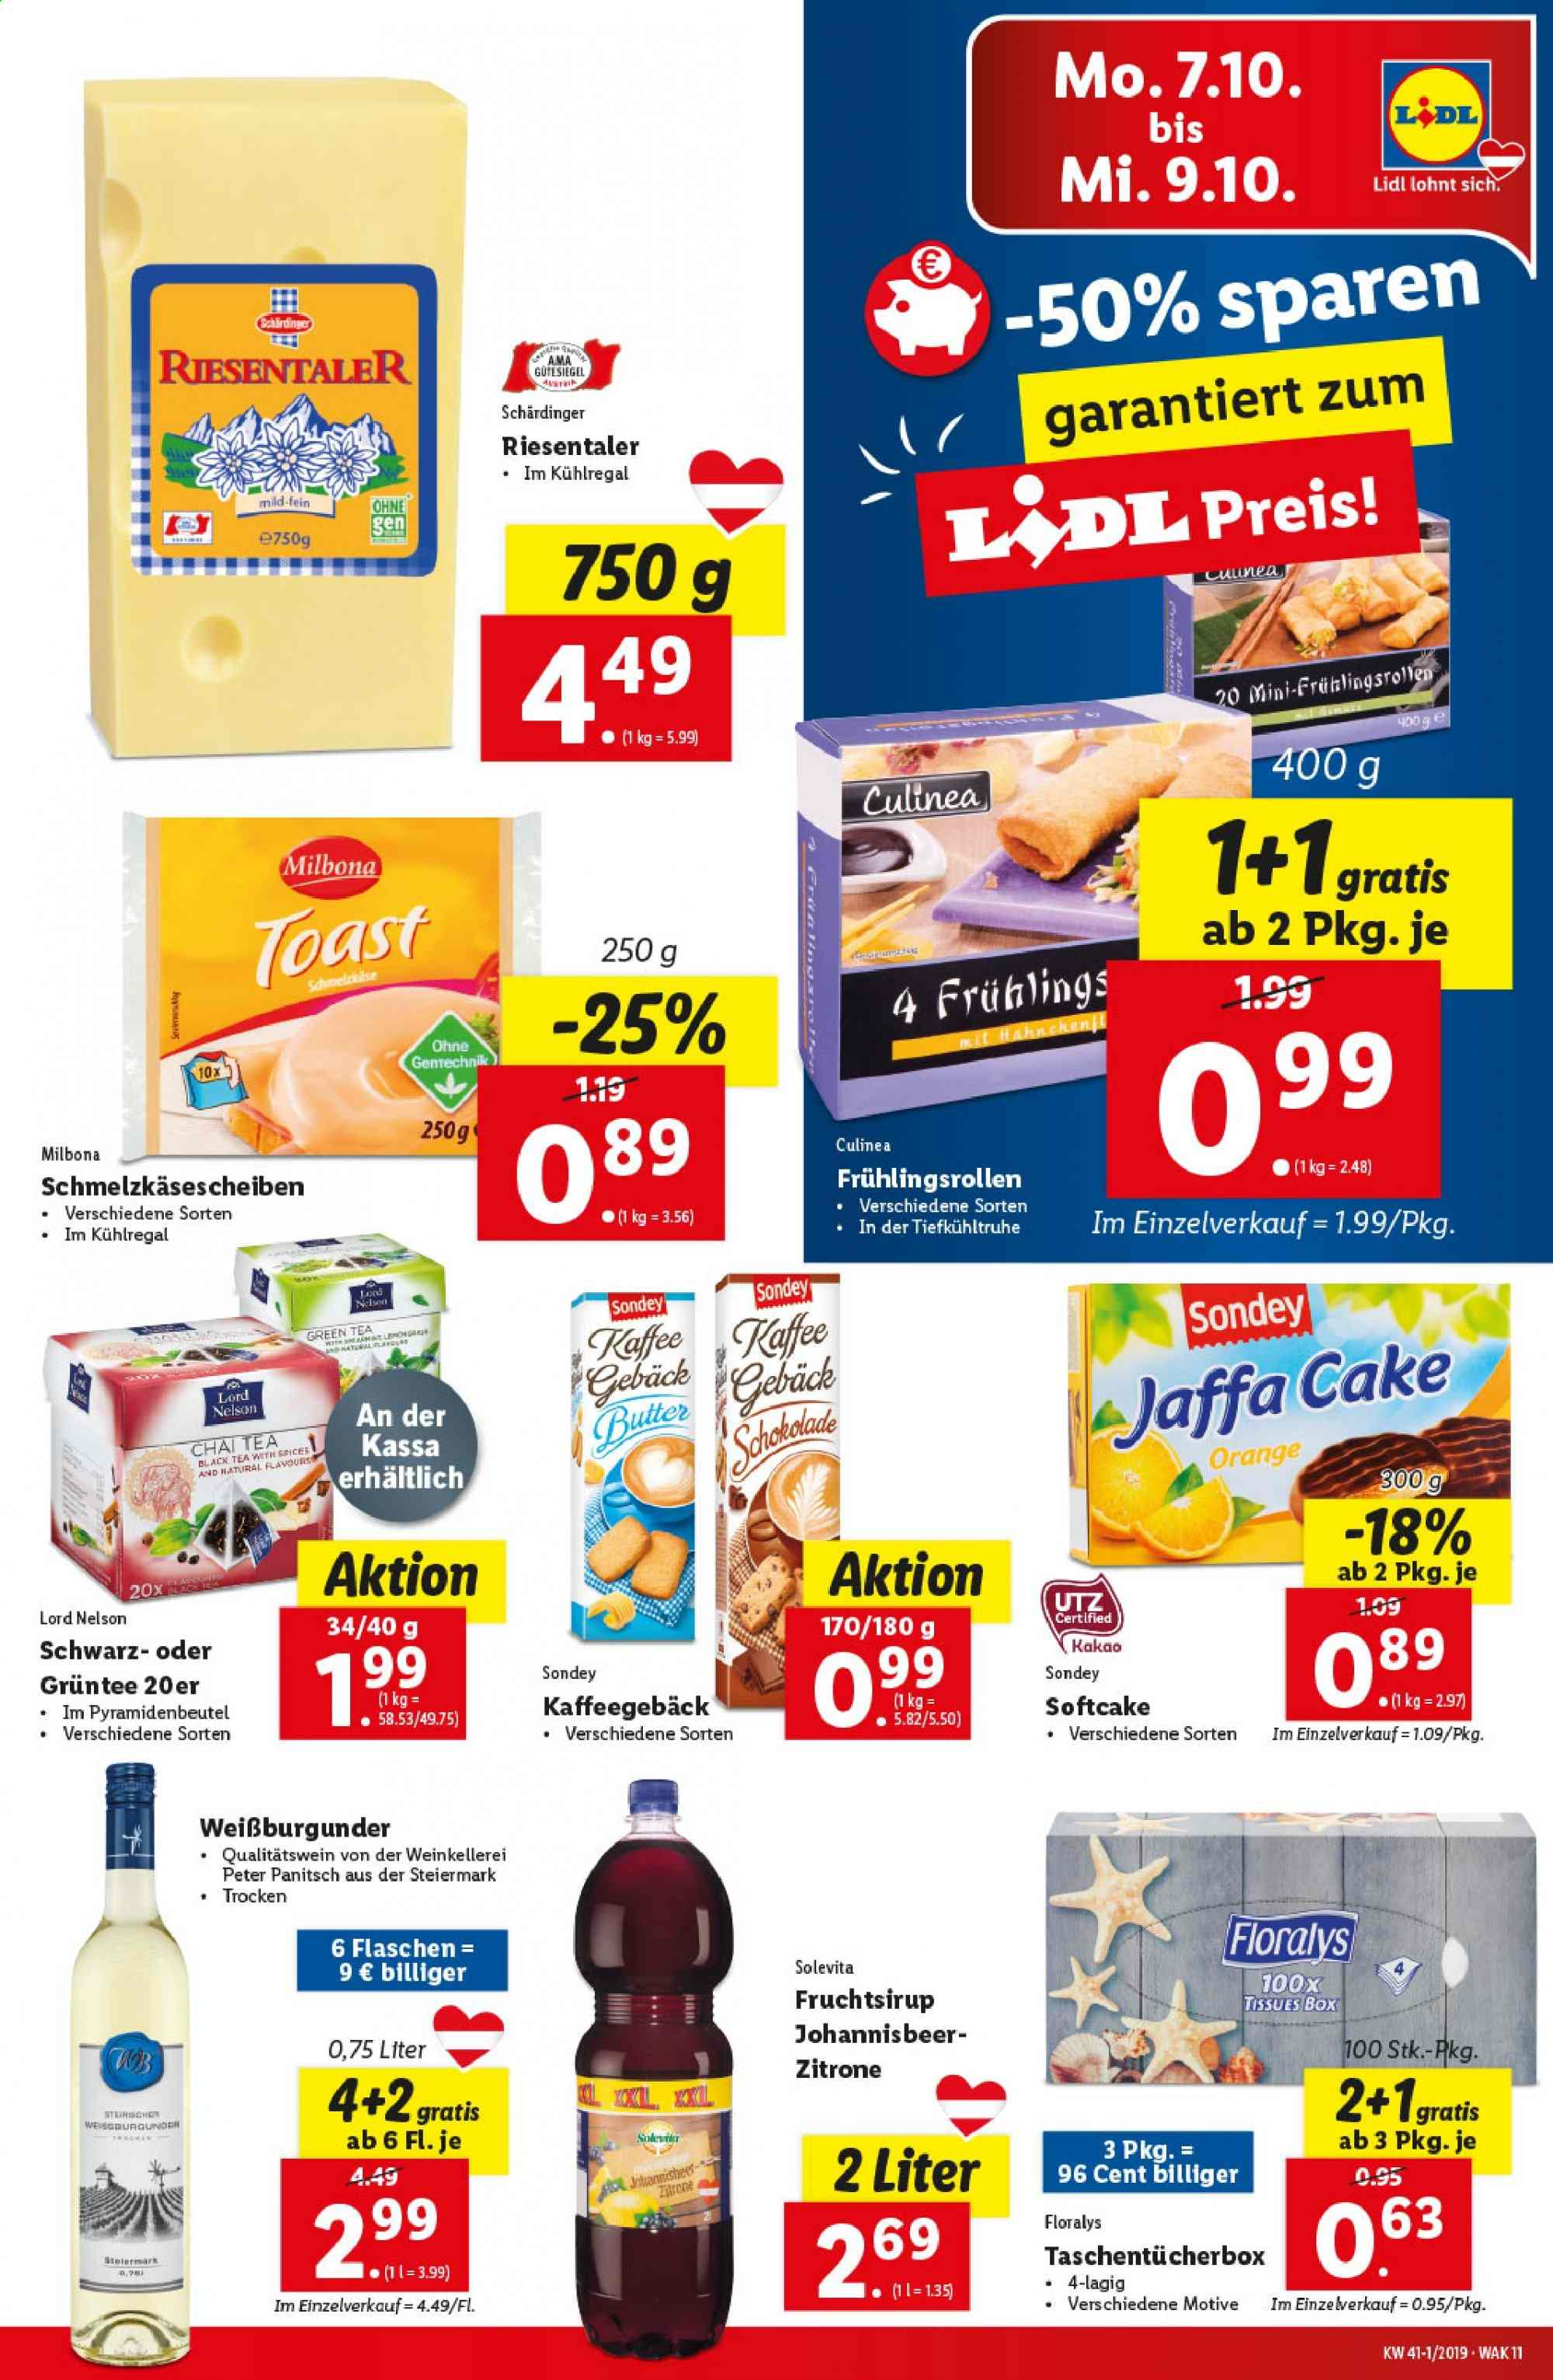 Angebote Lidl - 3.10.2019 - 9.10.2019. Seite 11.